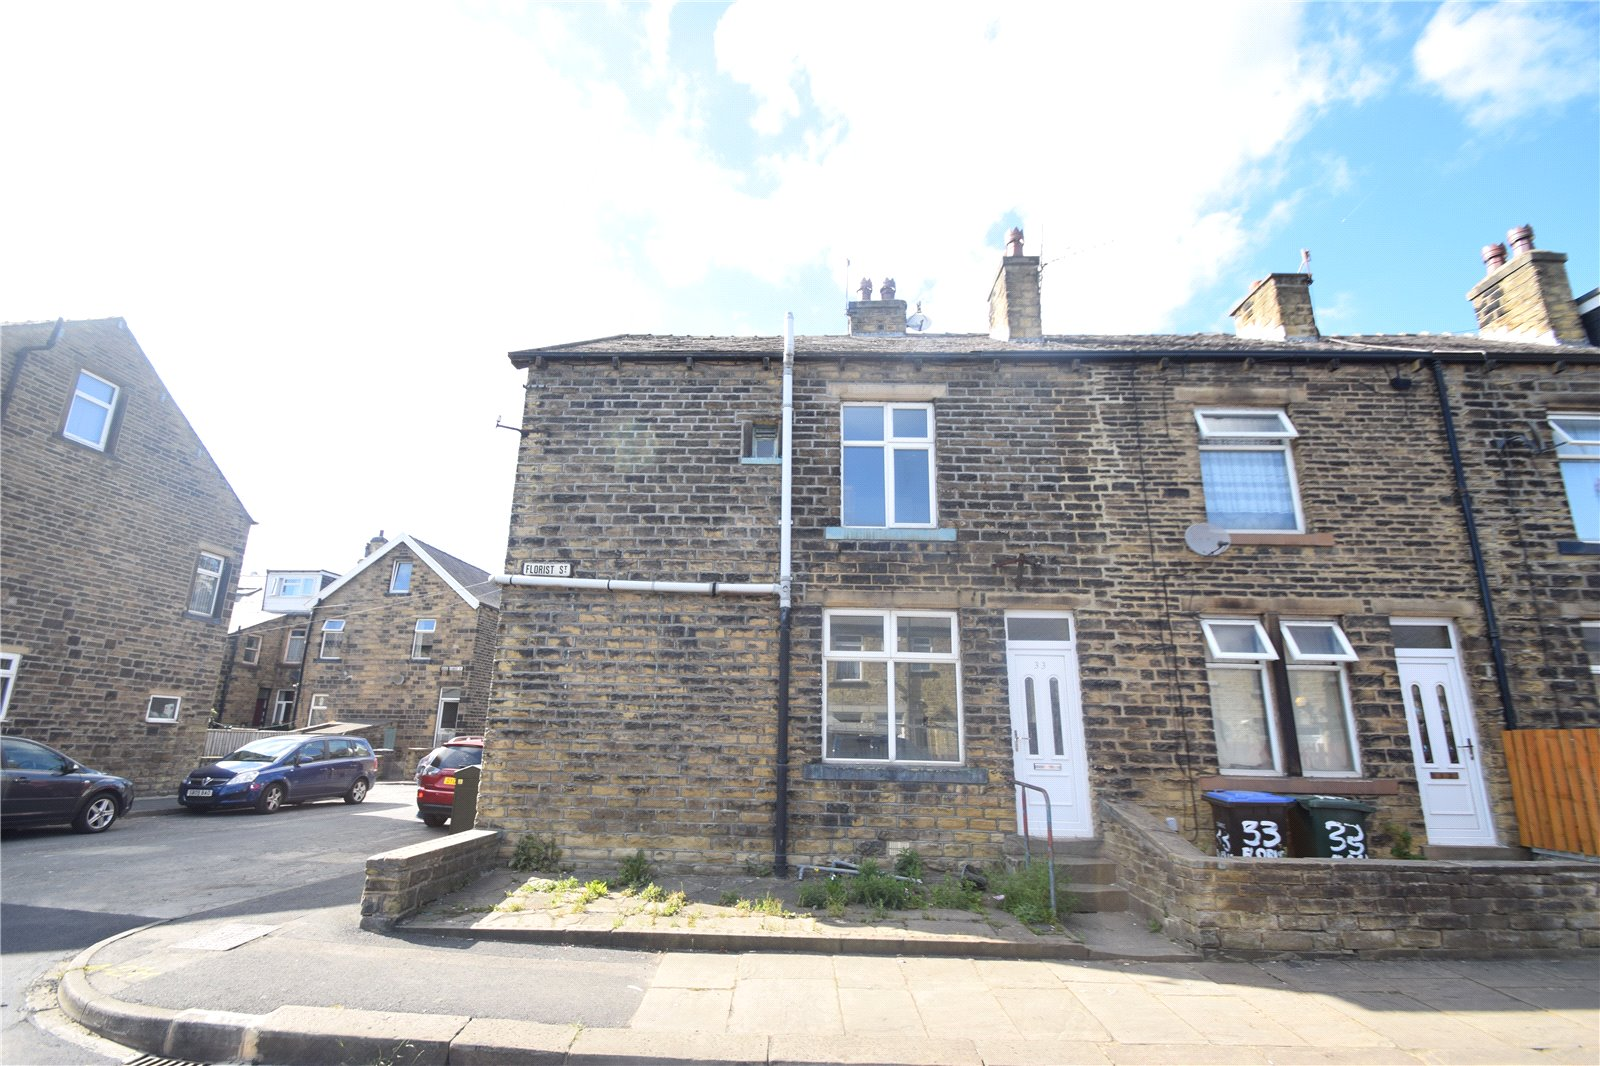 Yorkshire Terrace: Whitegates Keighley 2 Bedroom House To Rent In Florist